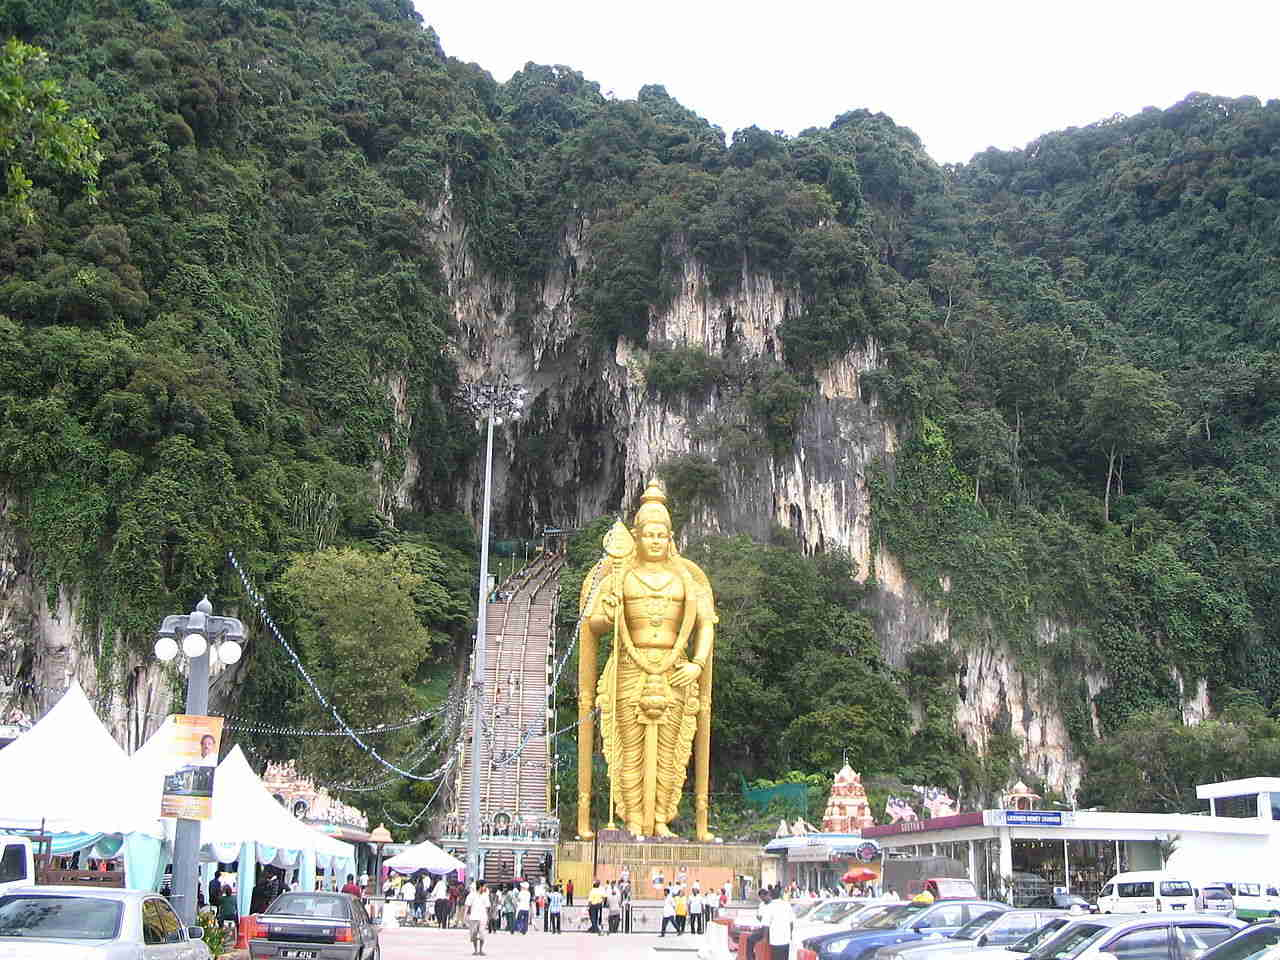 Entrance to the Batu Caves in Manalysia